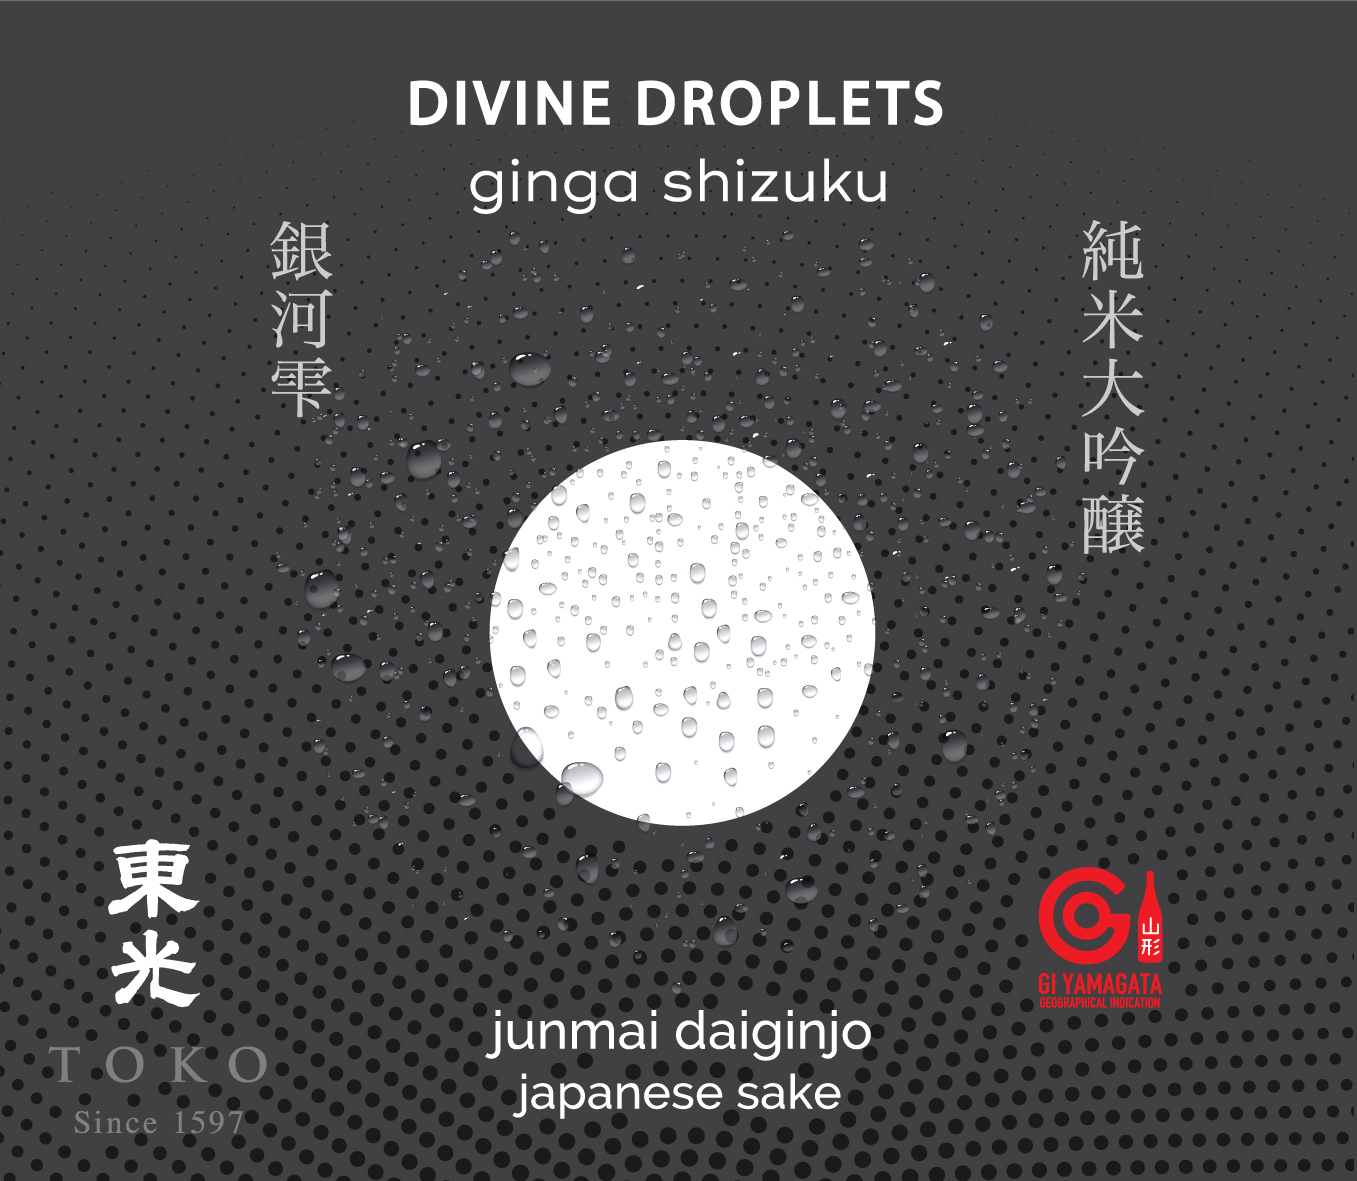 Toko Sake Devine Droplets Junmai Daiginjo 720 ml